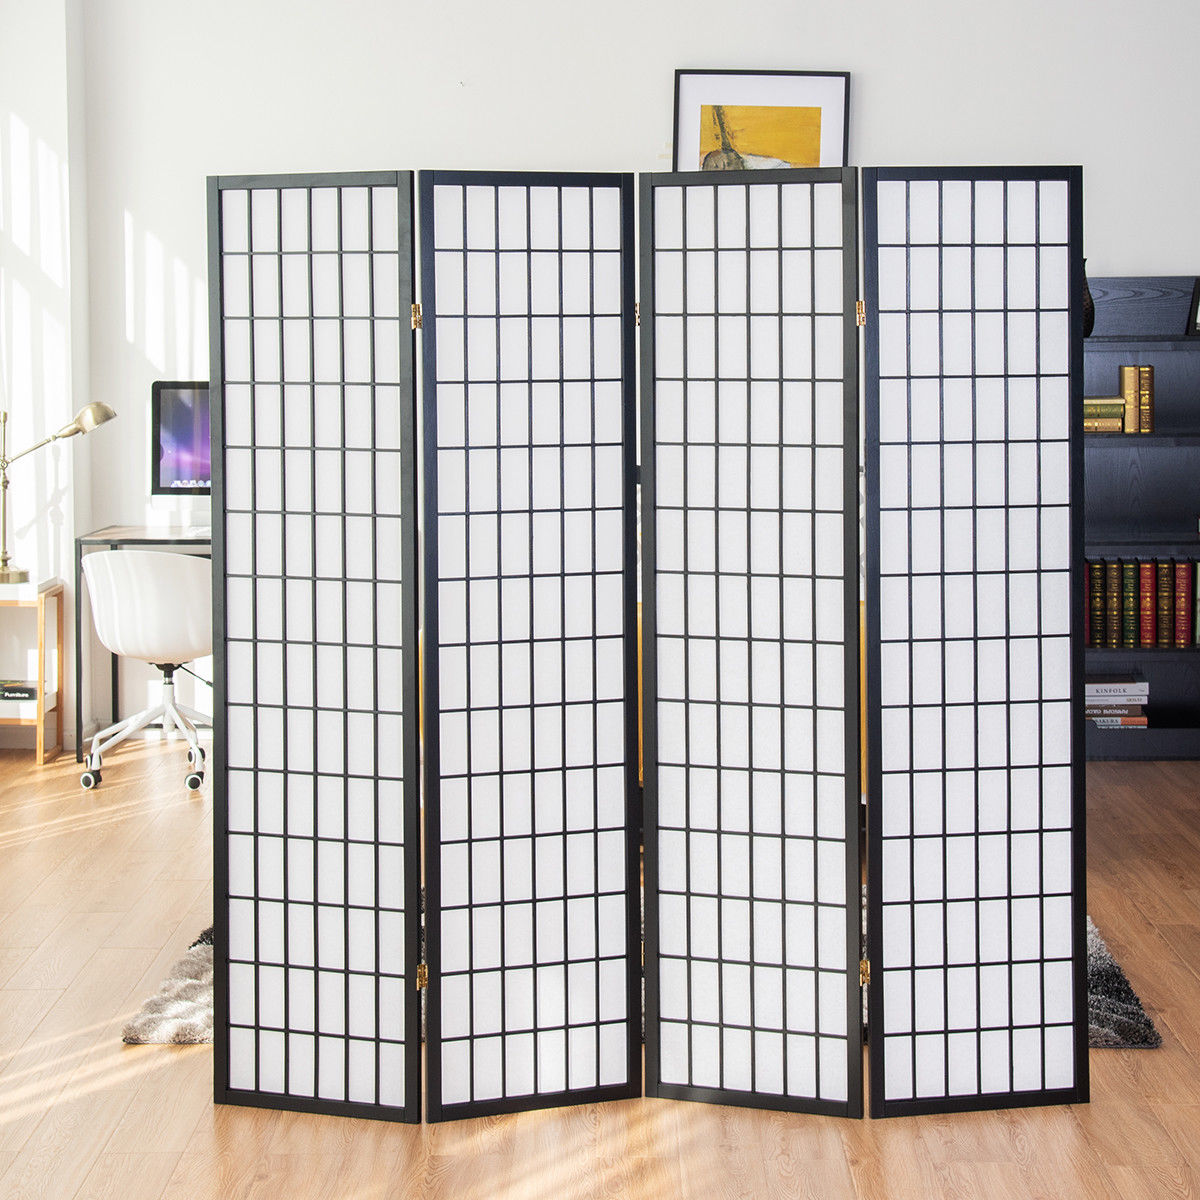 Stupendous Costway 4 Panel Room Divider Folding Privacy Shoji Screen Pine Wood Frame Black Home Interior And Landscaping Ologienasavecom